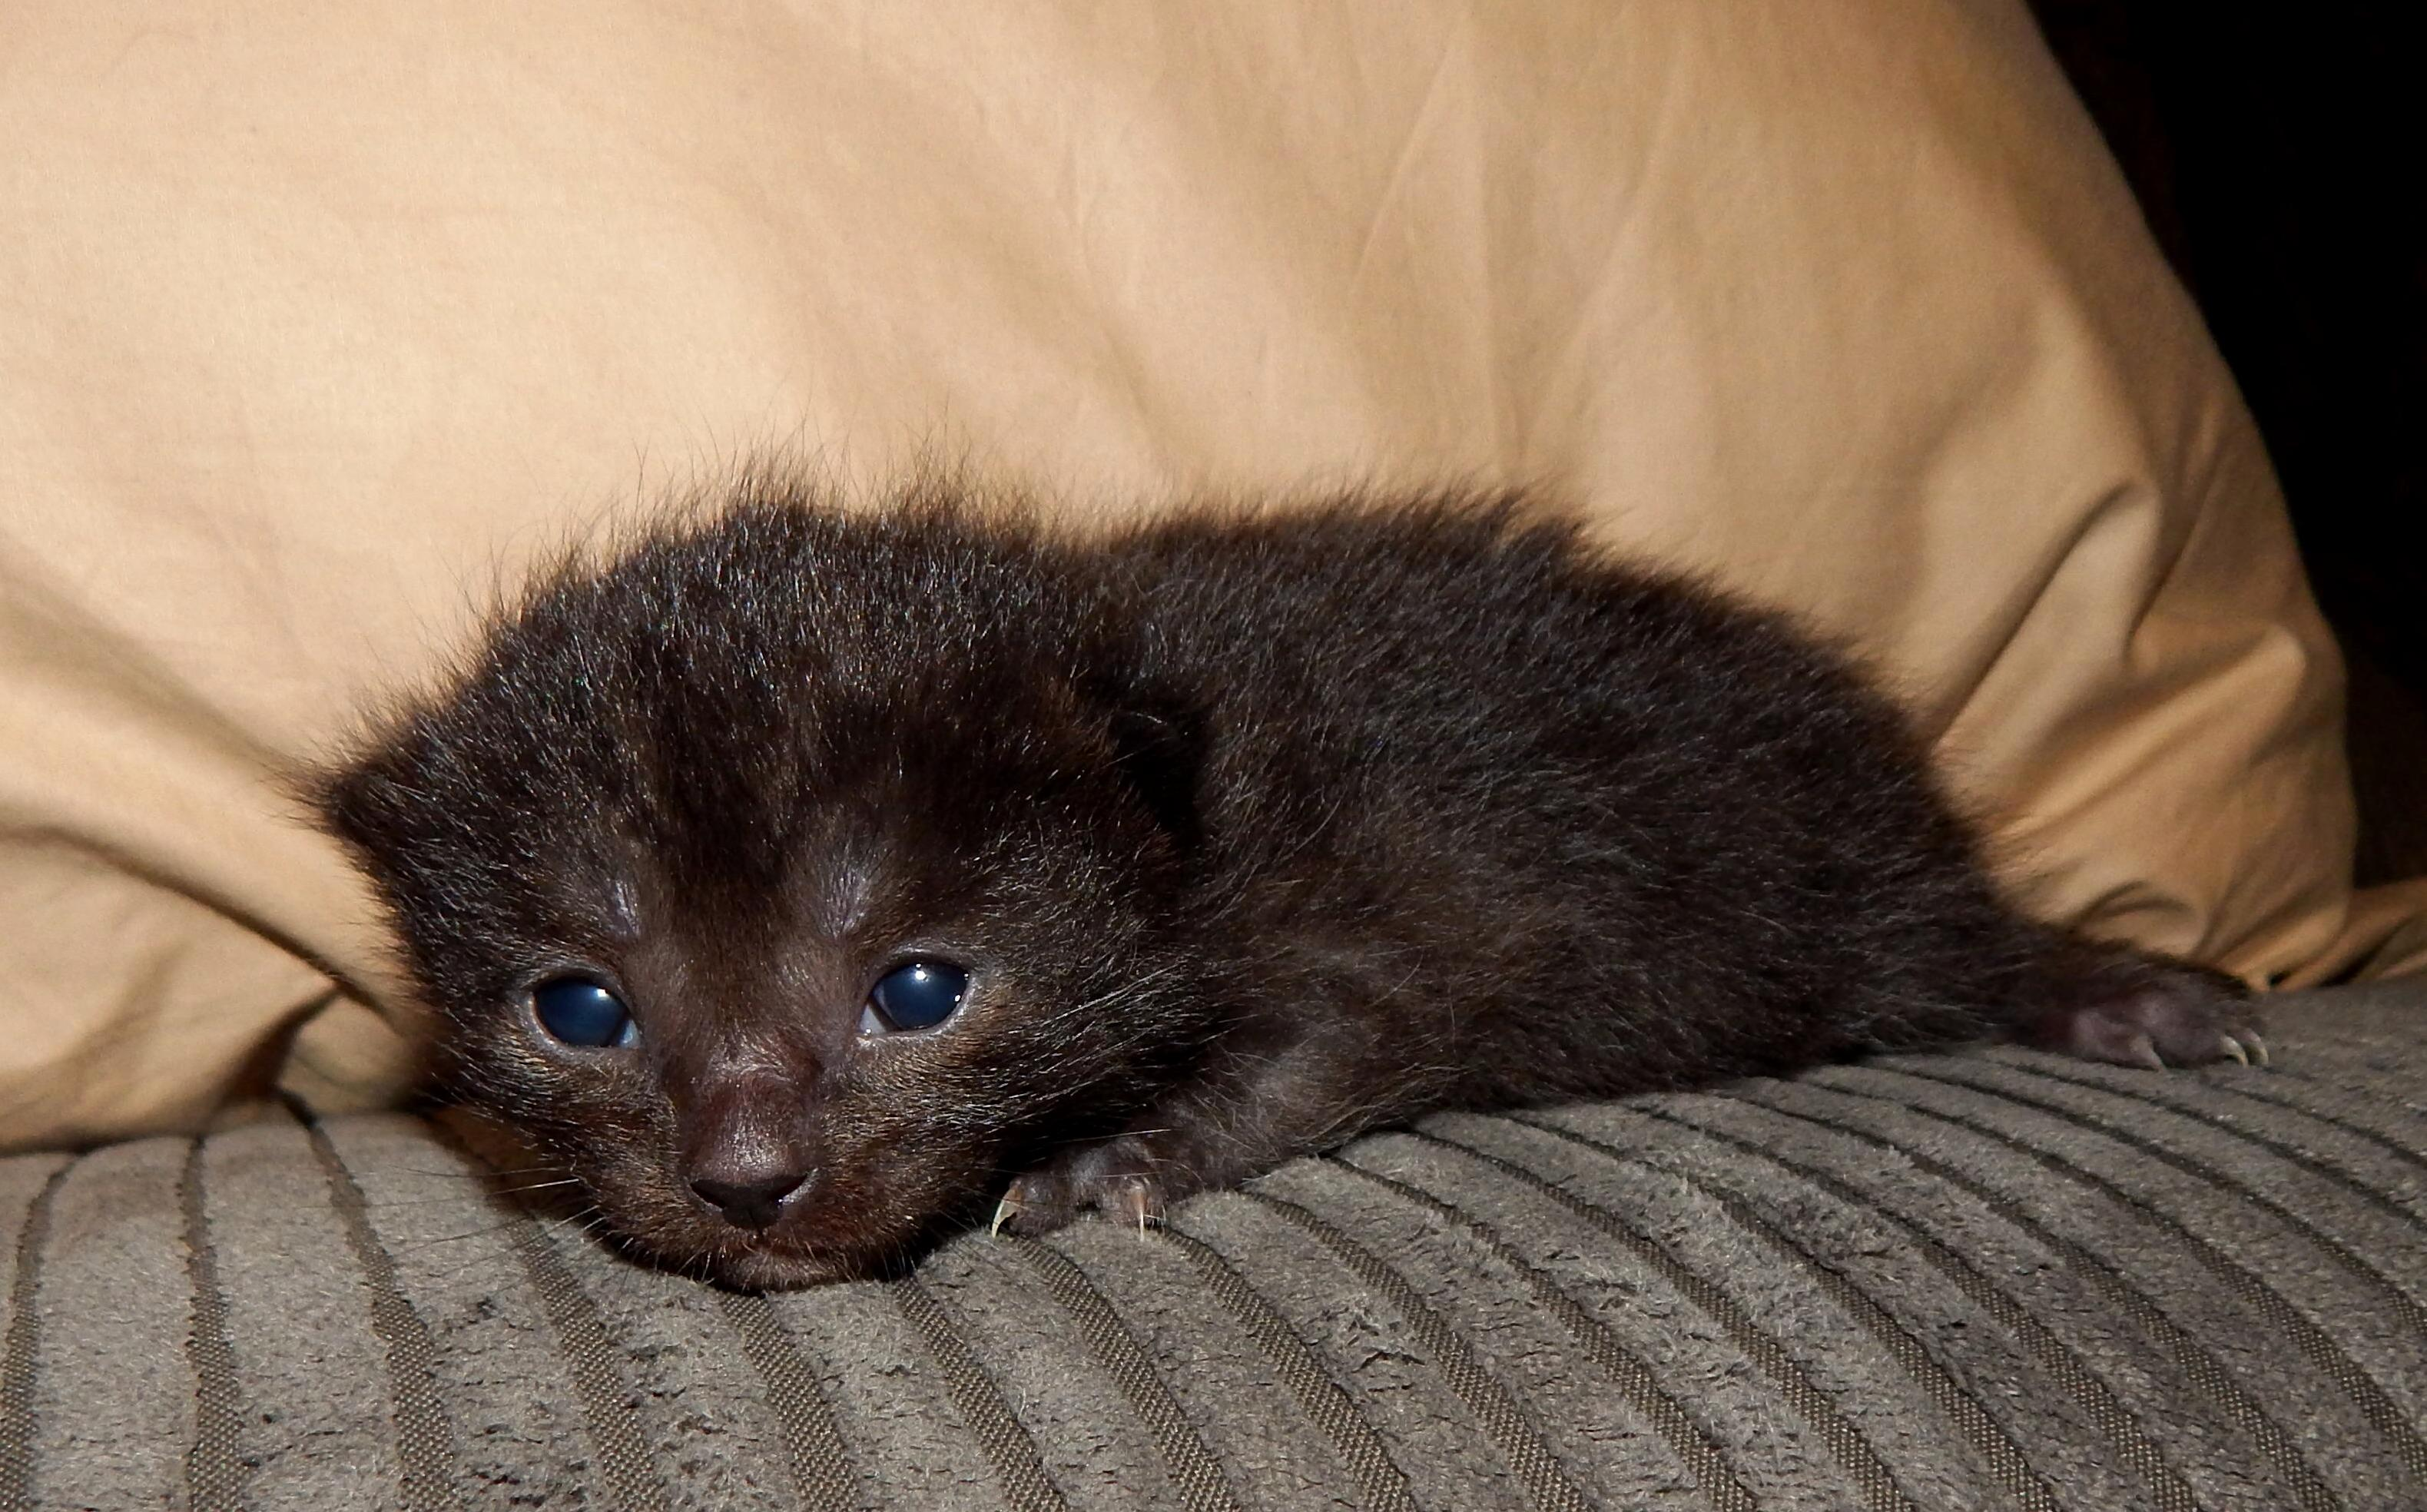 Going to be a dad meet my soon to be cat. shes an all back russian blue 4 weeks old .